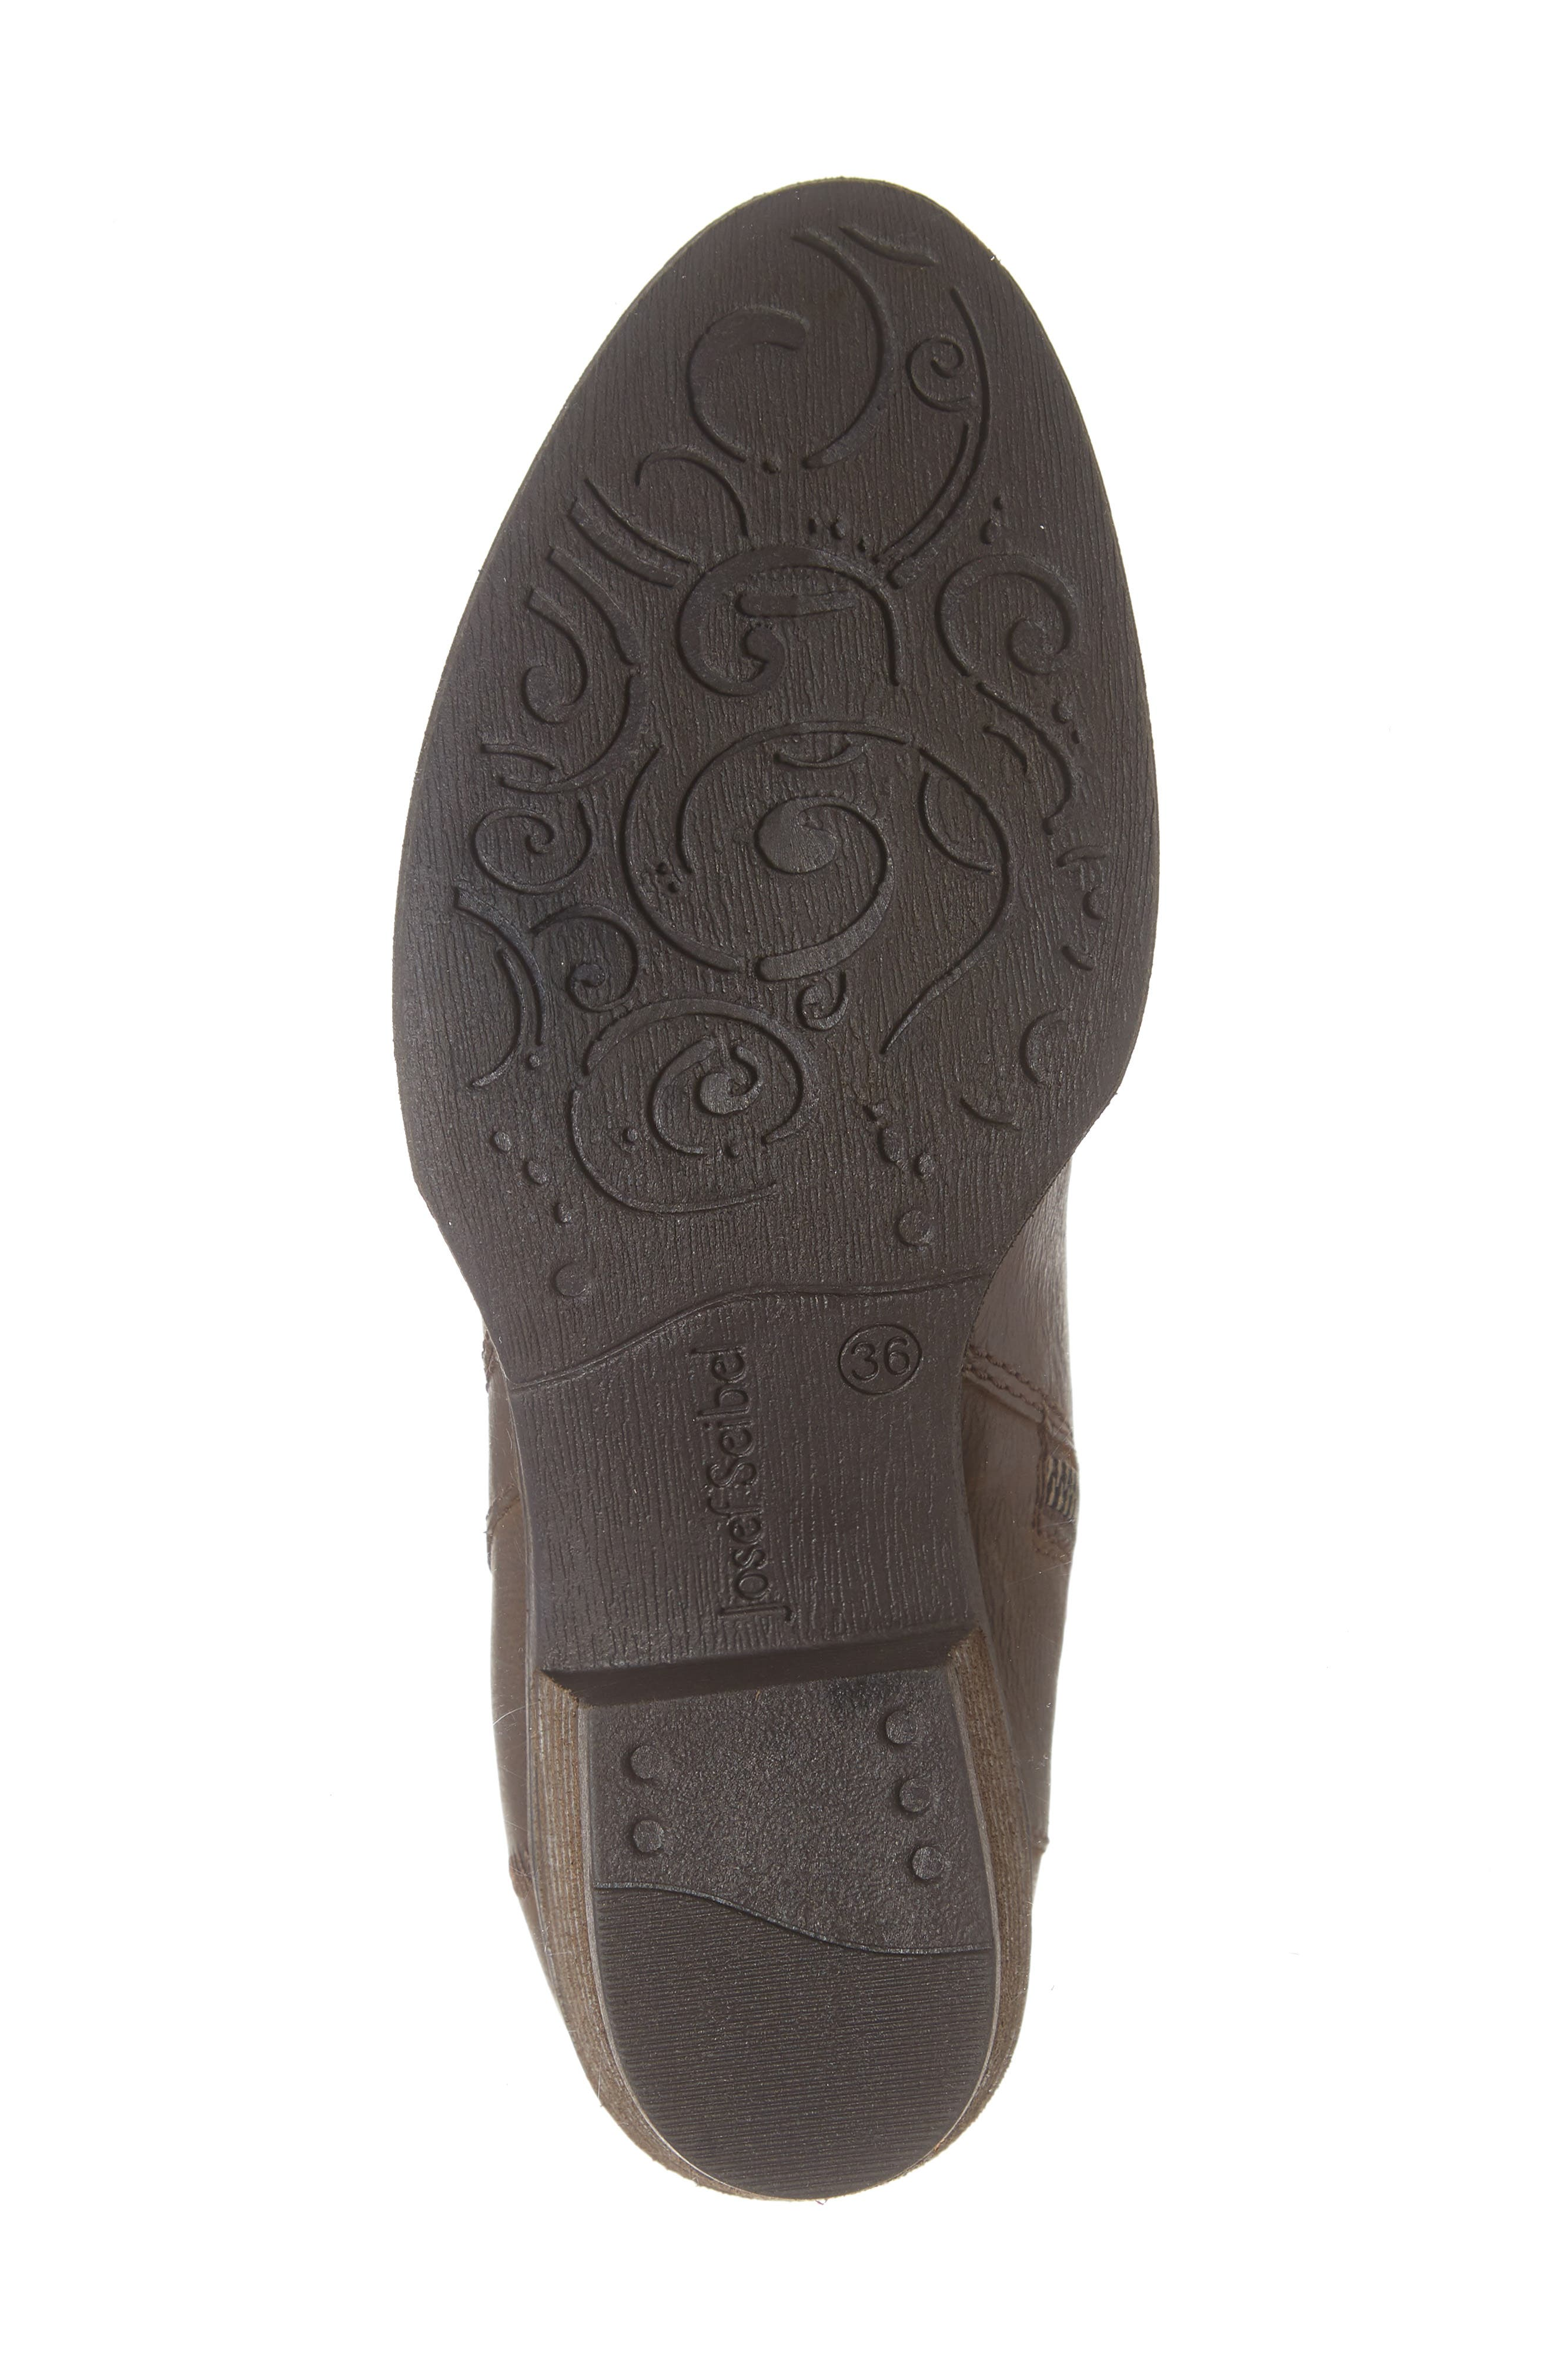 JOSEF SEIBEL,                             Daphne Bootie,                             Alternate thumbnail 6, color,                             MORO WASHED LEATHER